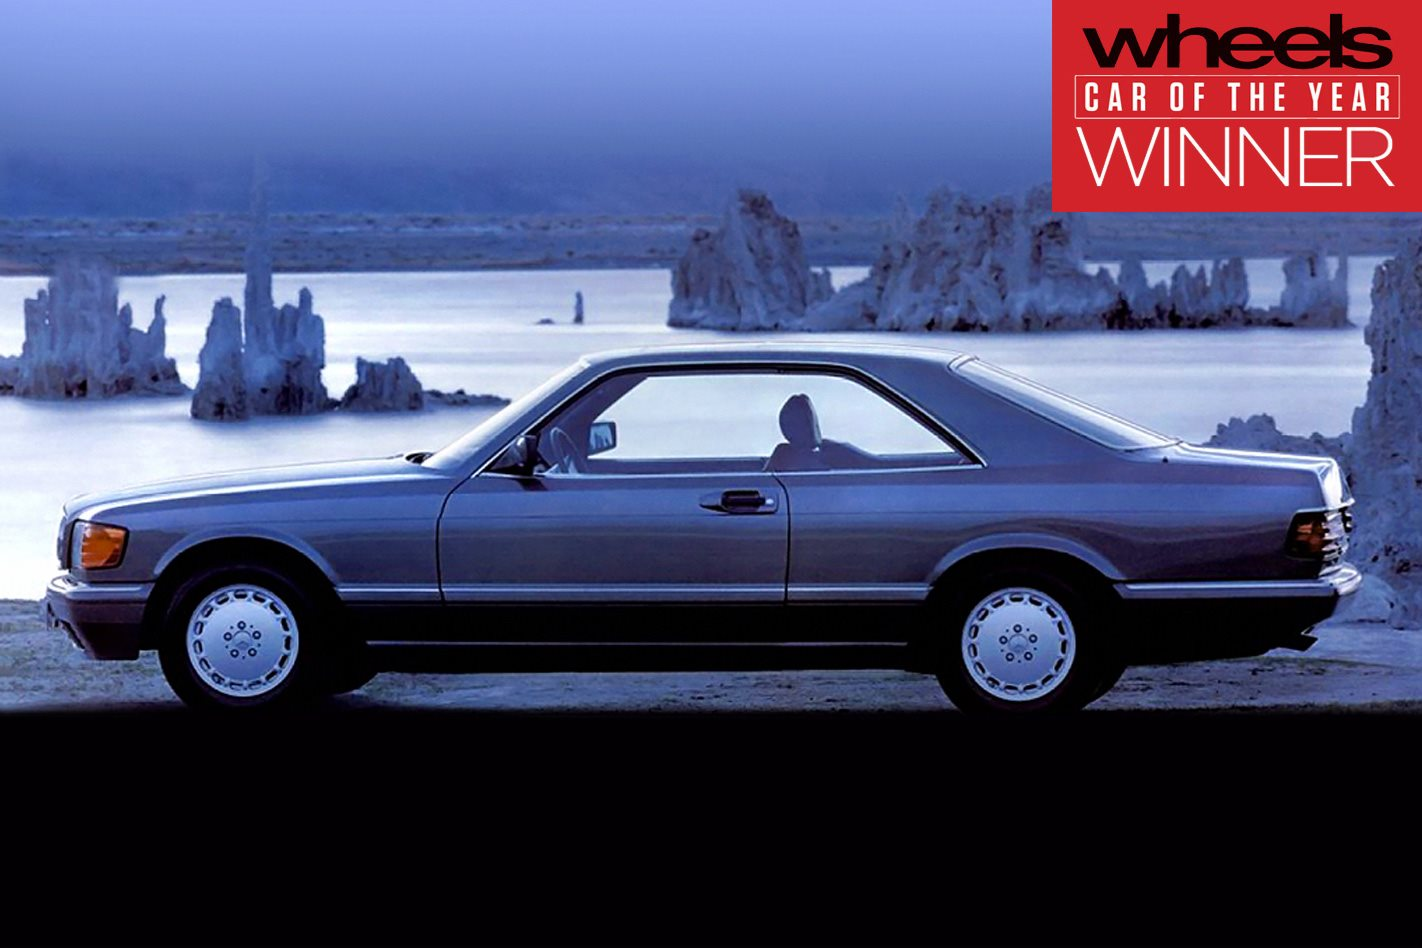 a214382164 The History of Wheels Car of the Year - Winners List